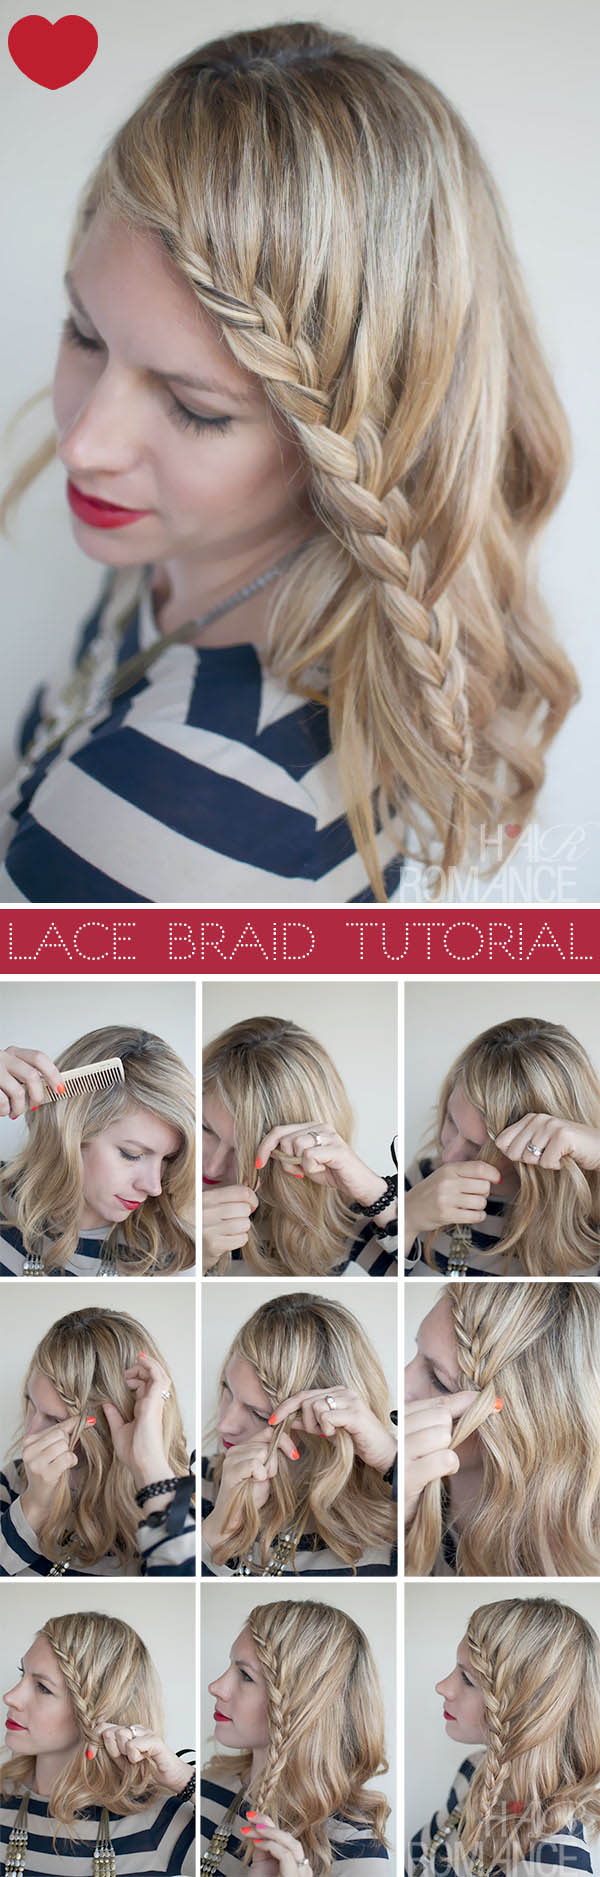 Super 20 Most Beautiful Braided Hairstyle Tutorials For 2014 Pretty Hairstyles For Women Draintrainus